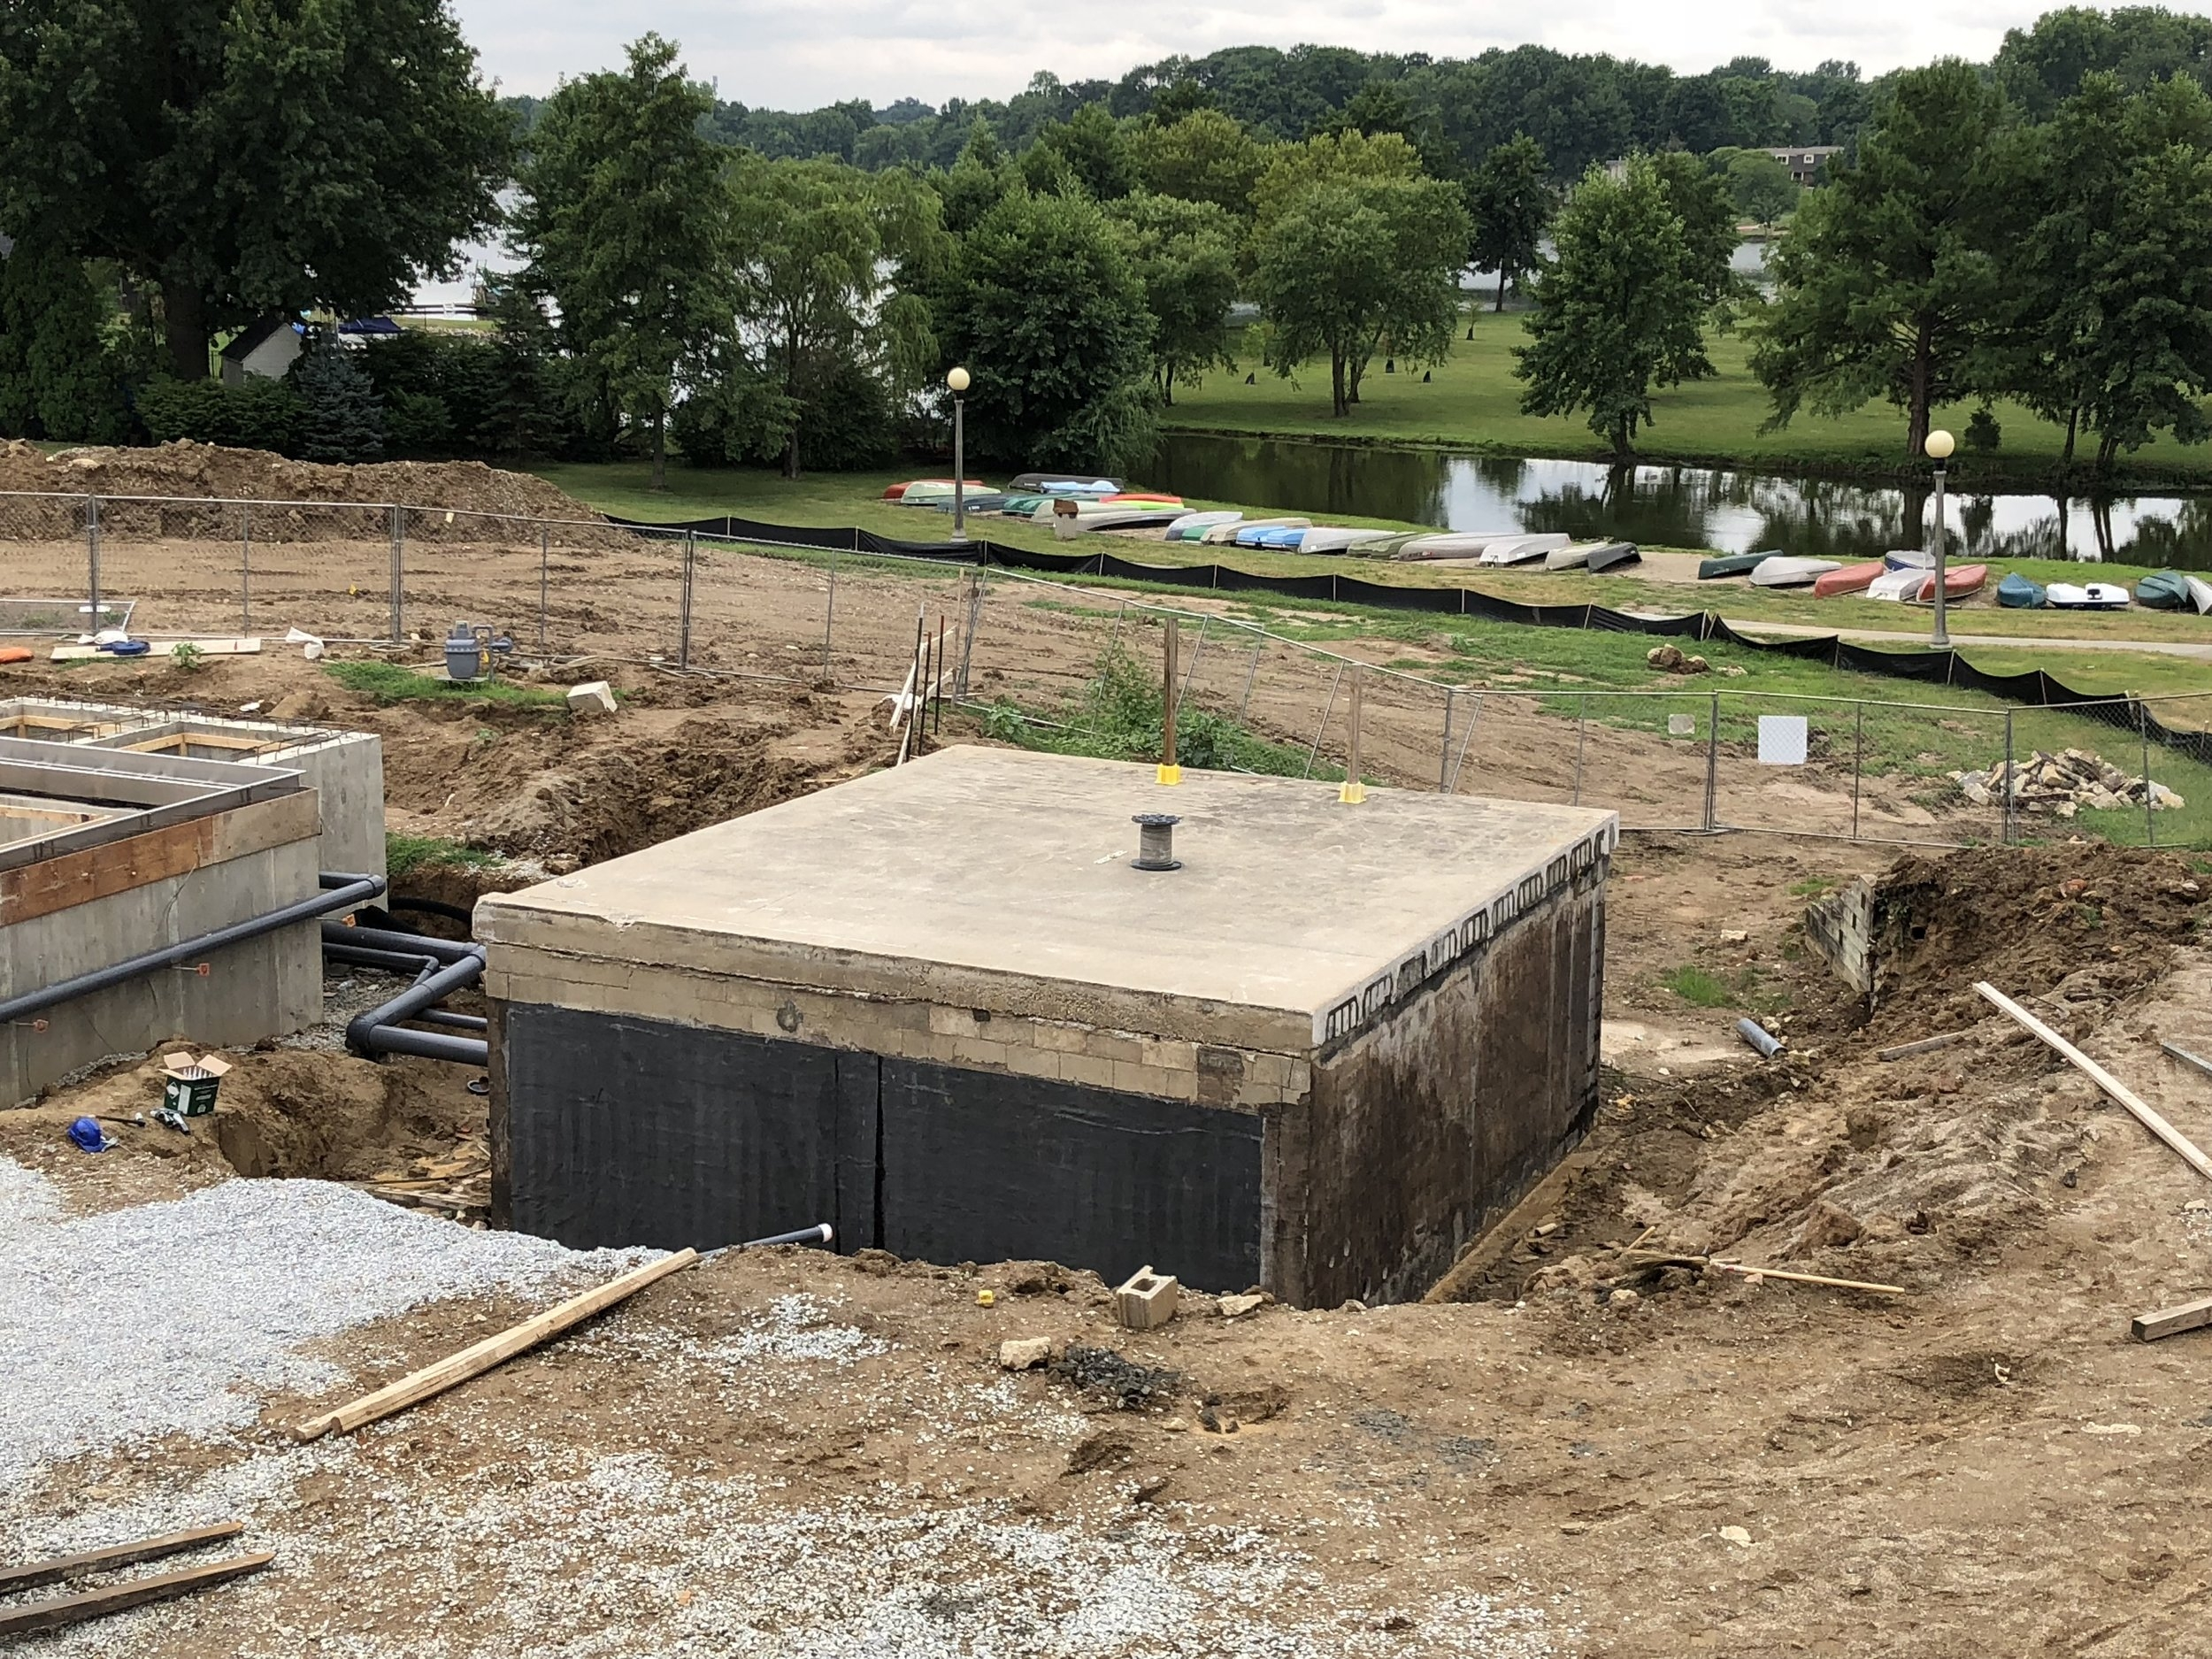 Pool Mechanical Room Walls have been reinforced and repaired. Awaiting the application of the waterproof membrane to side walls, then backfilling will take place once that is completed, construction will begin on the wading pool. (Update, Membrane was installed on 7/26.